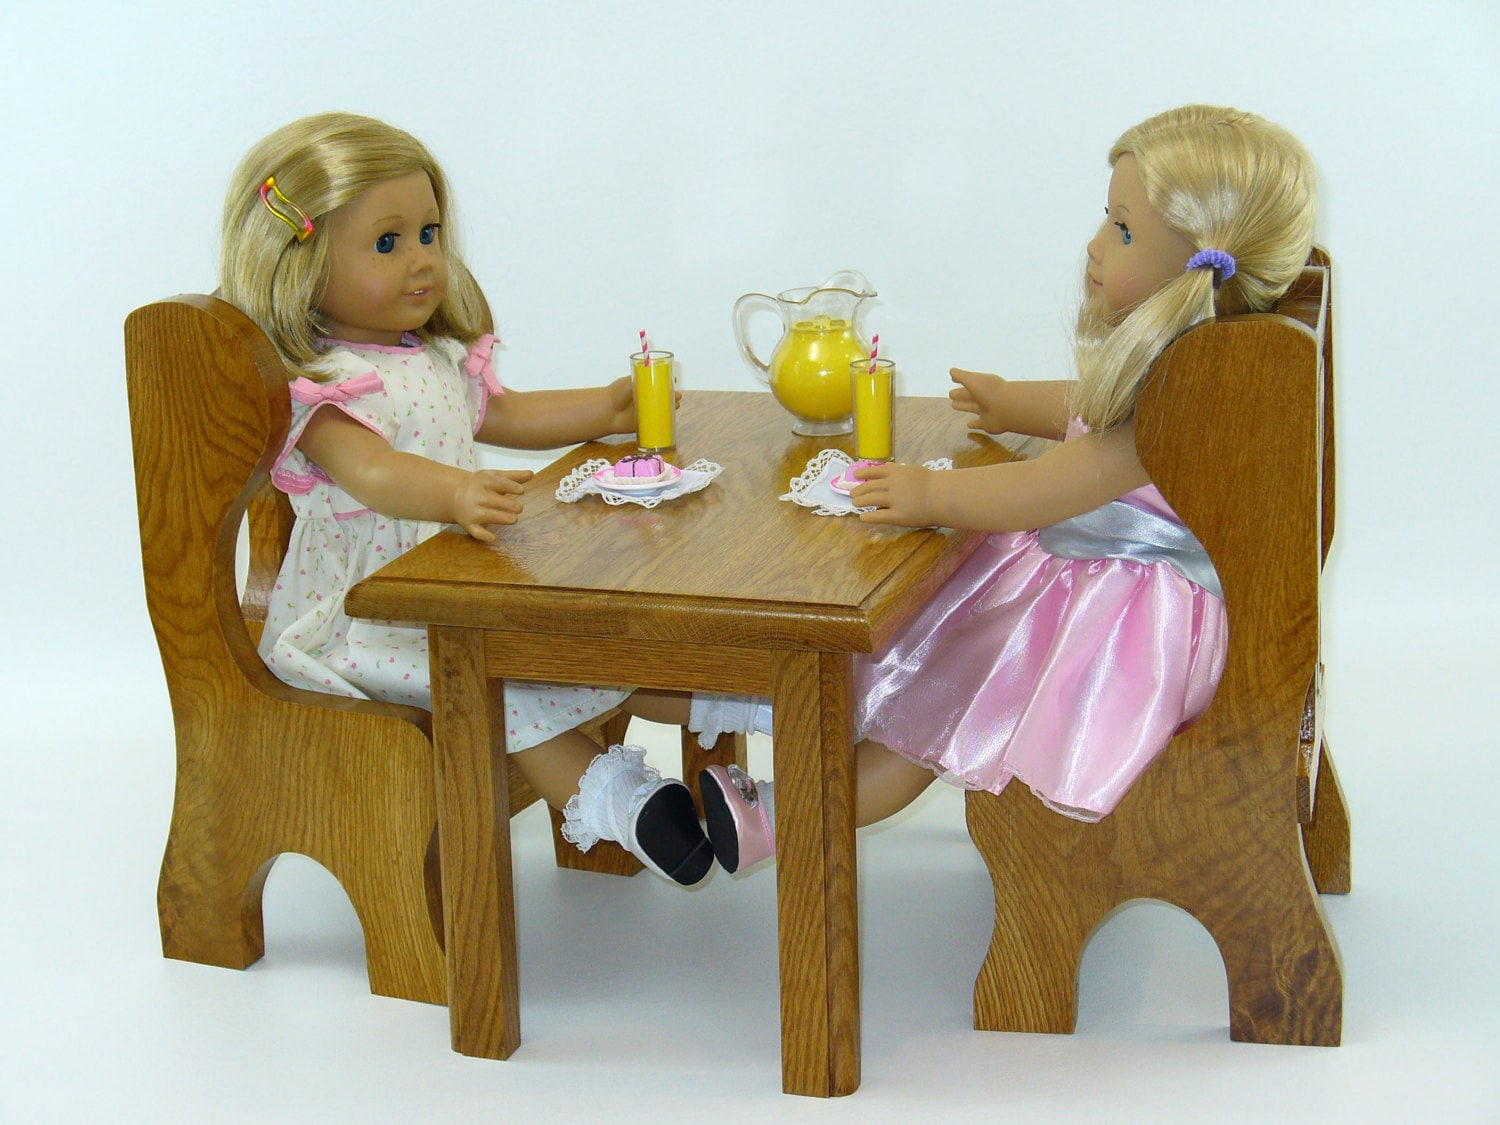 American Girl Doll Furniture Dining Set Table by  : ilfullxfull625724619aagx from www.etsy.com size 1500 x 1125 jpeg 330kB